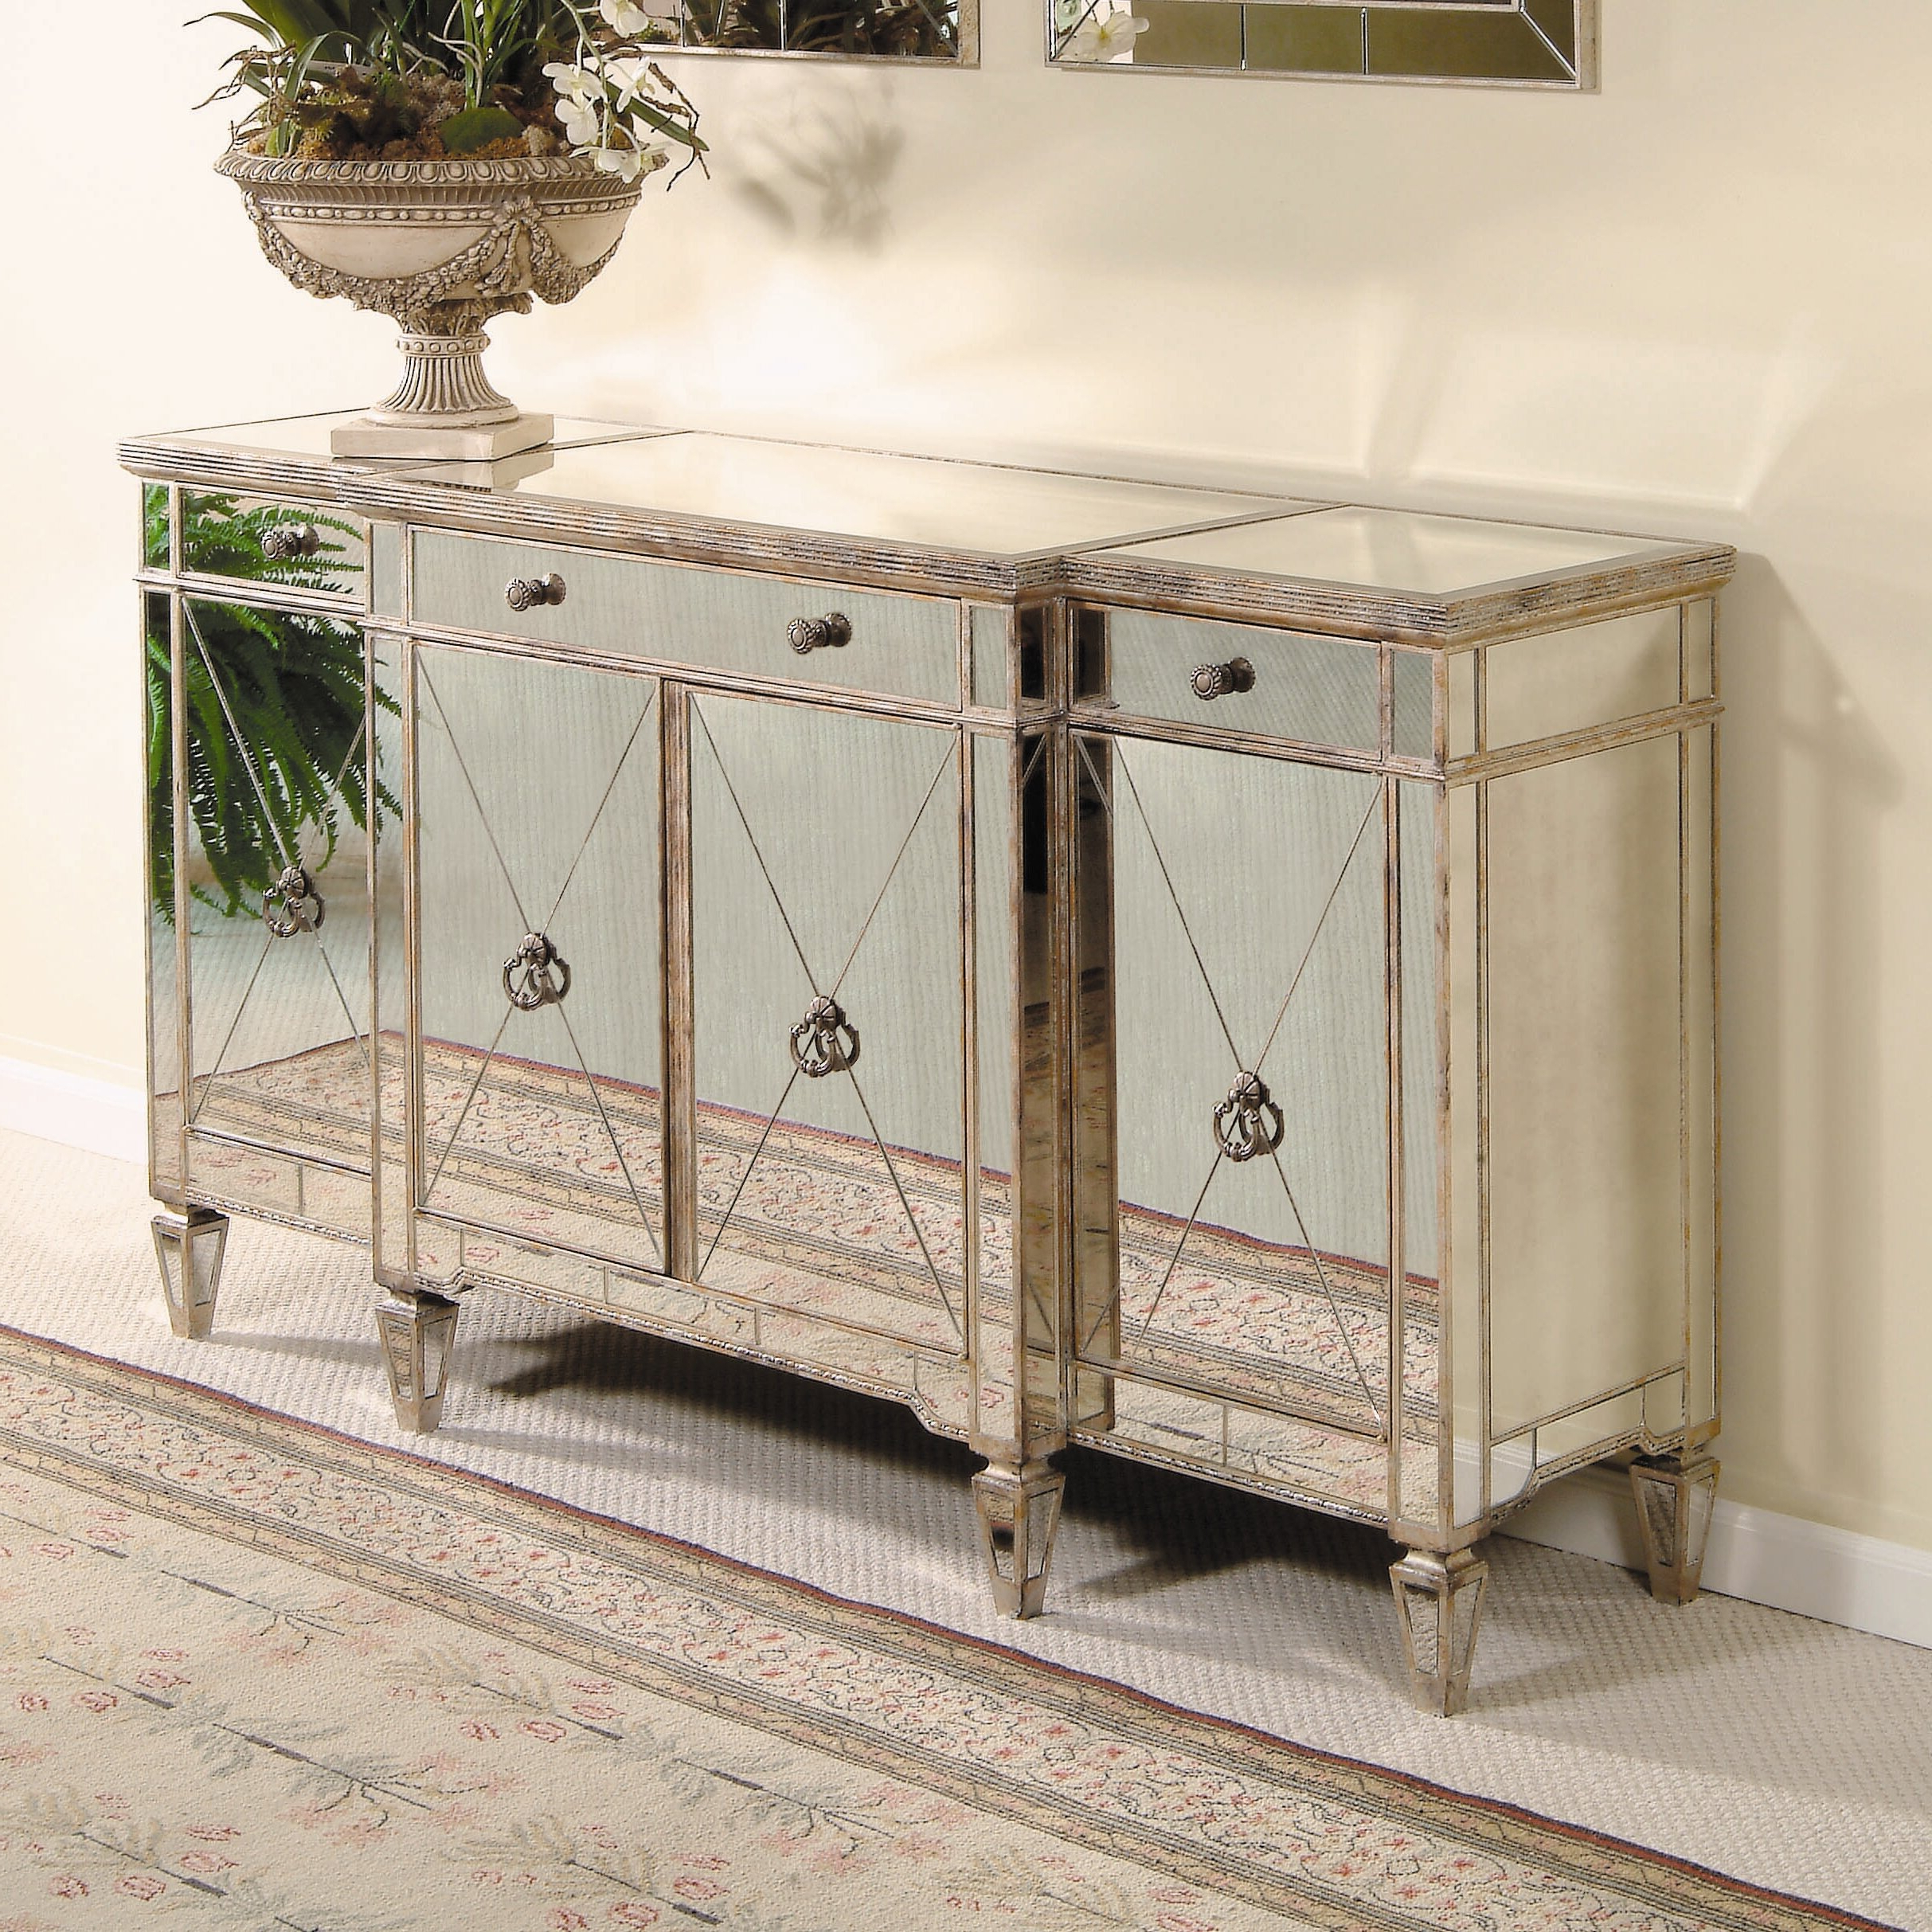 Roehl Mirrored Sideboard Intended For 3 Piece Mirrored Buffets (View 16 of 20)